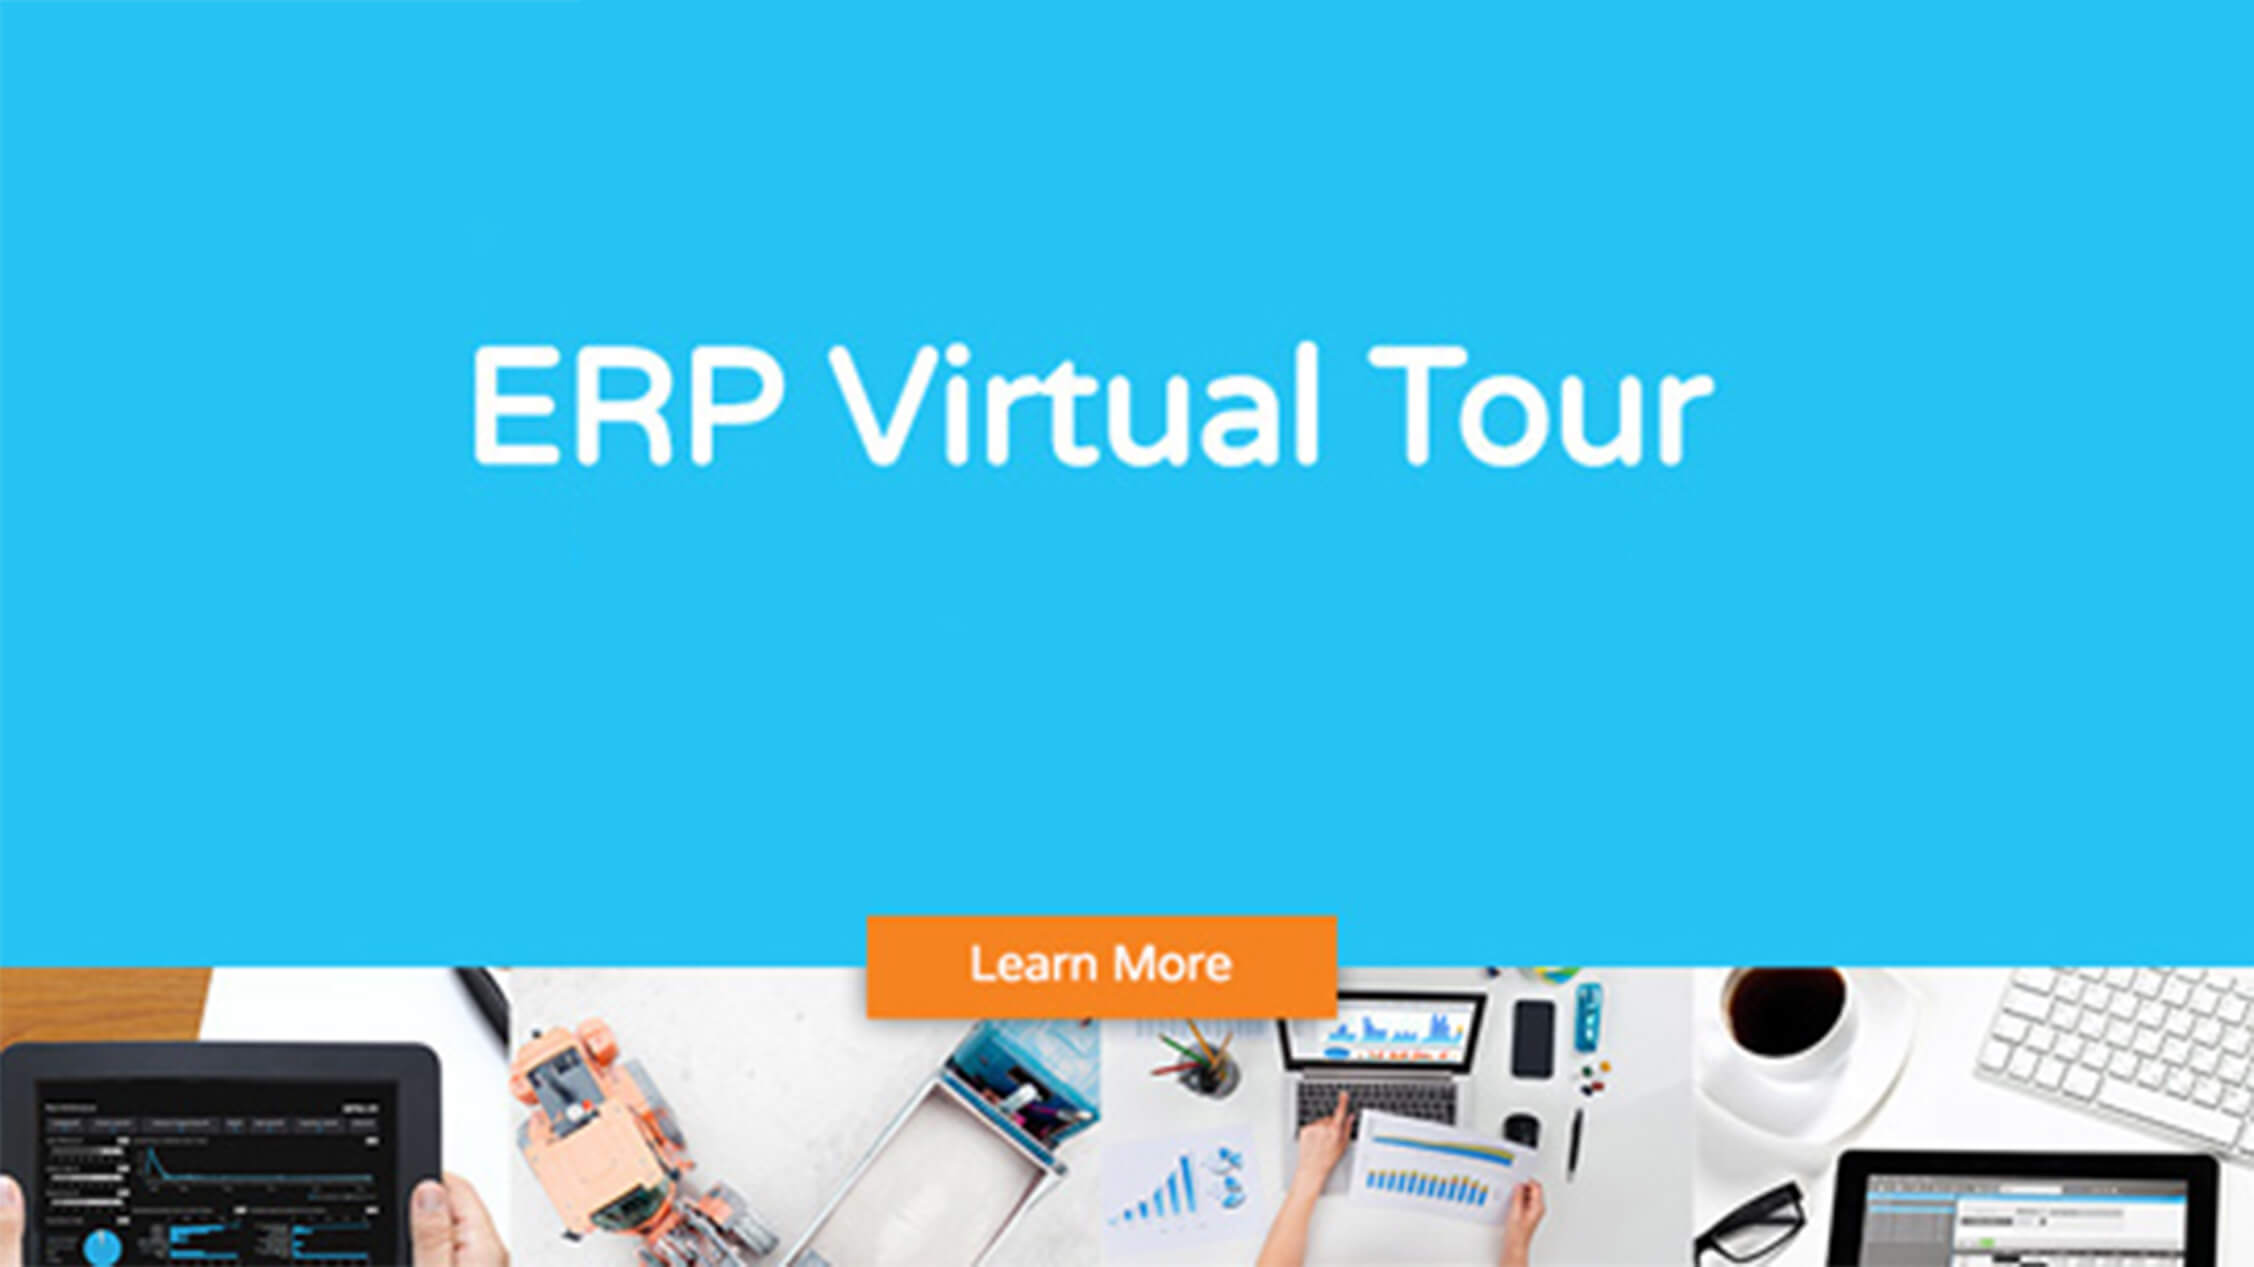 Epicor ERP Virtual Tour